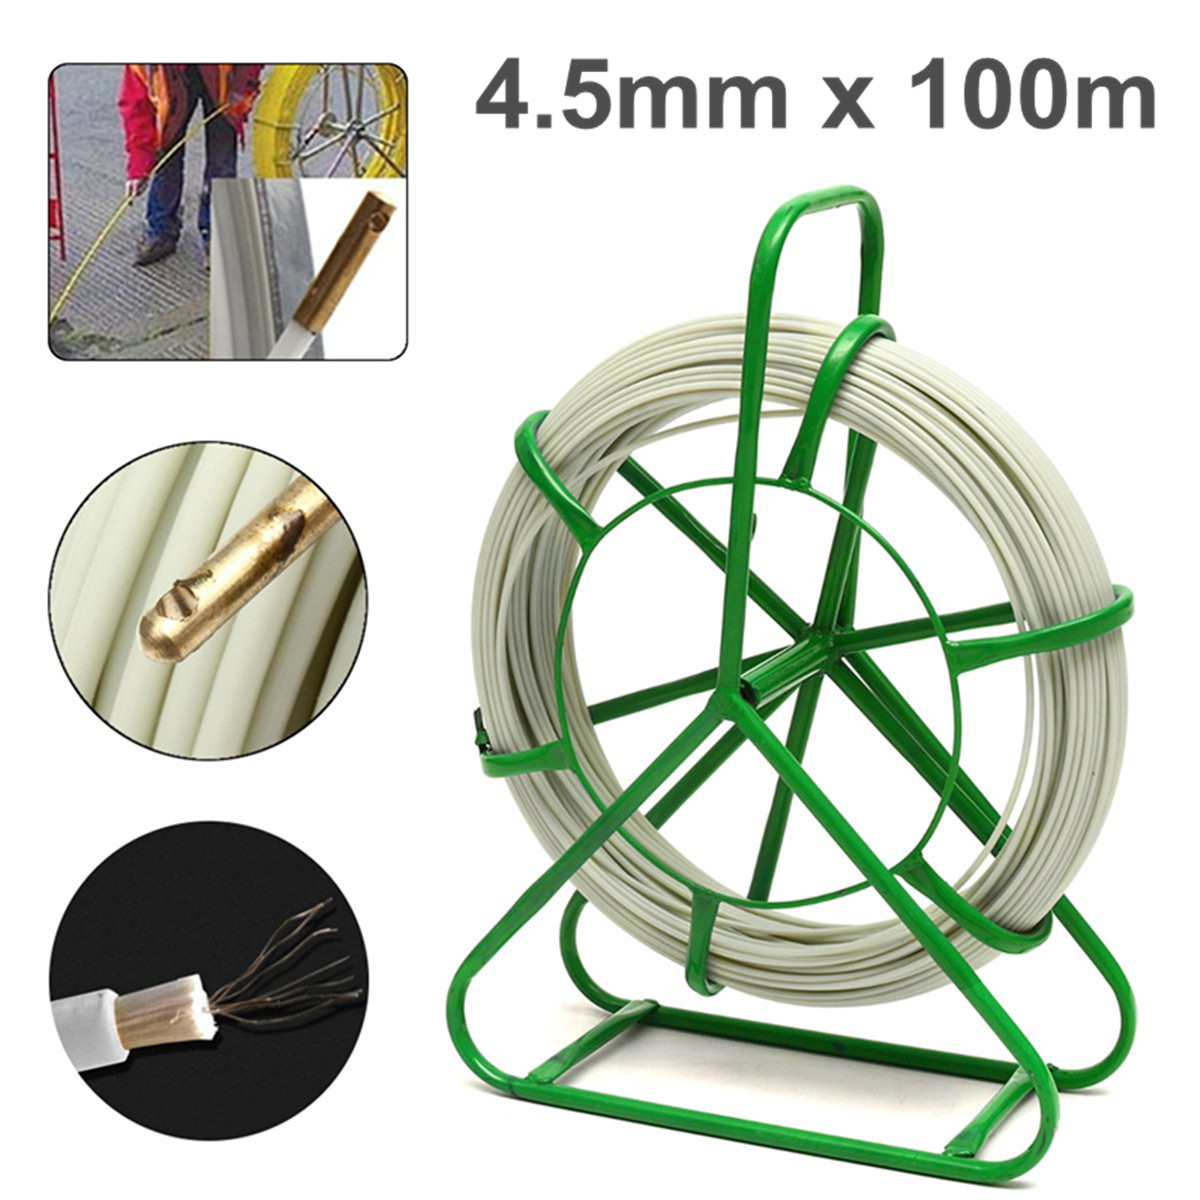 4.5mm*100m Fiberglass Cable Rodder Duct Electric Tape Running Puller Lead Rodder Electrical Equipment Wiring Accessories4.5mm*100m Fiberglass Cable Rodder Duct Electric Tape Running Puller Lead Rodder Electrical Equipment Wiring Accessories